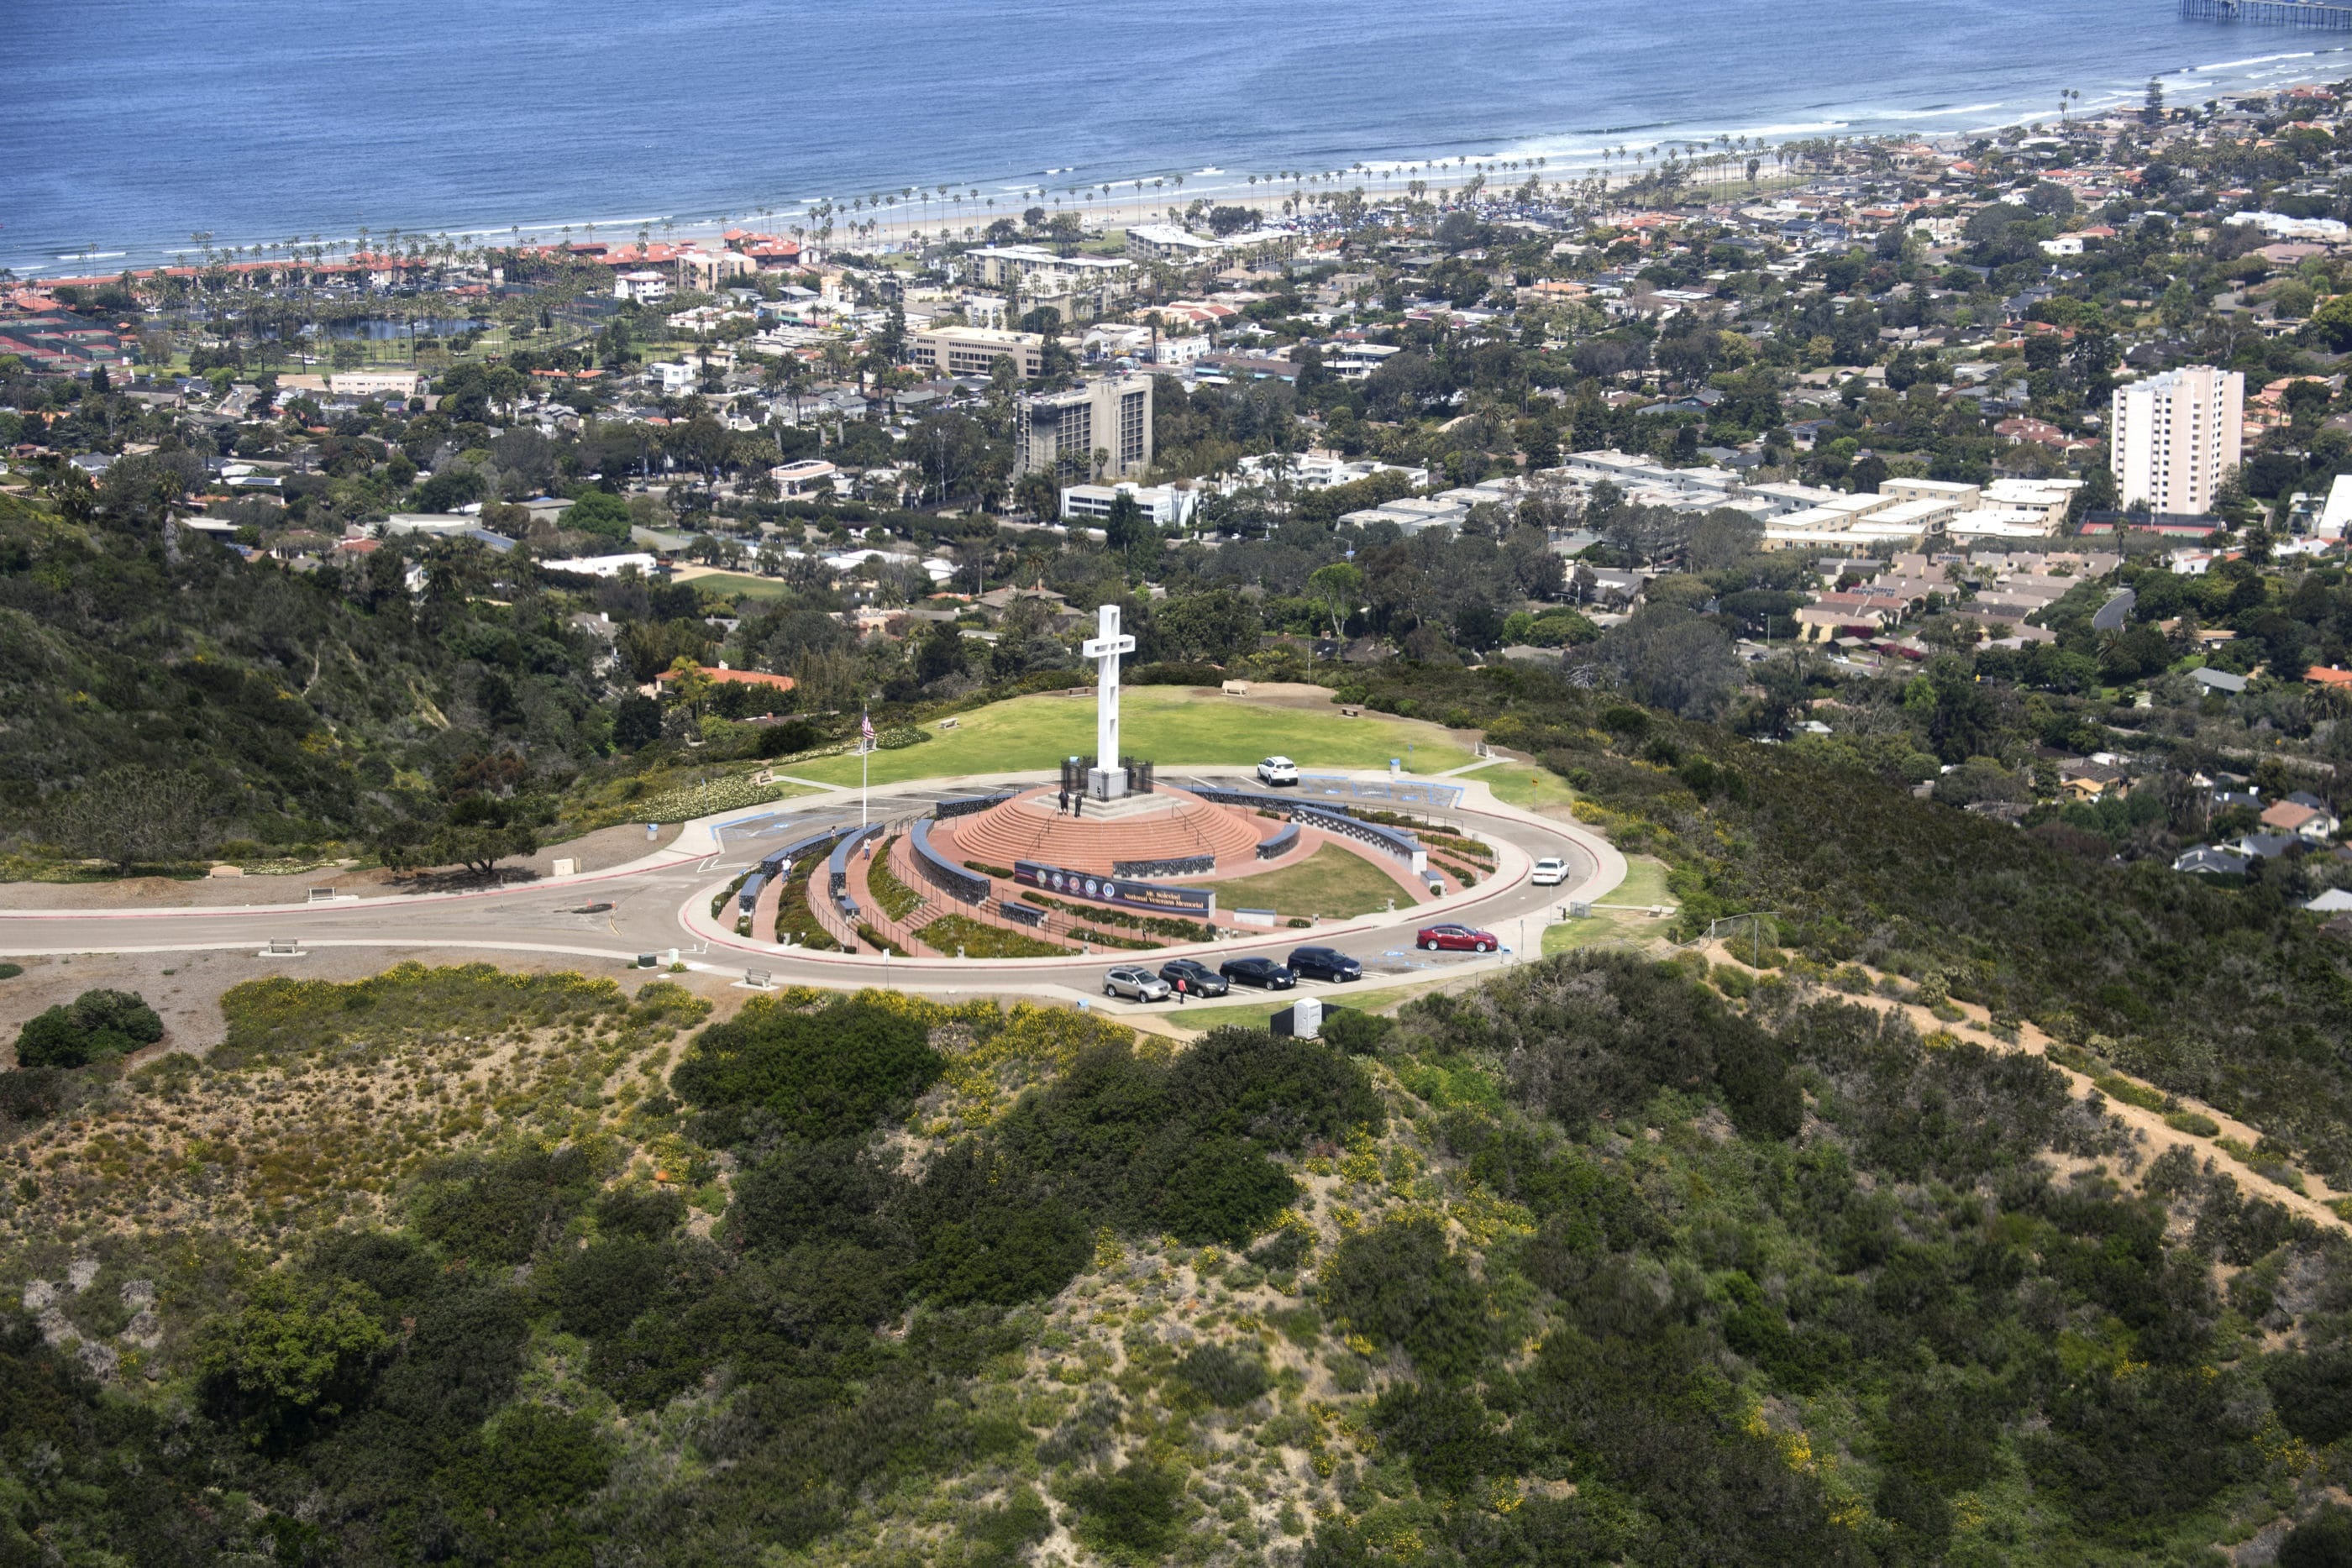 I live on Mount Soledad in La Jolla. Learn about the cross, veterans memorial, things to do nearby, directions, history, and much more.